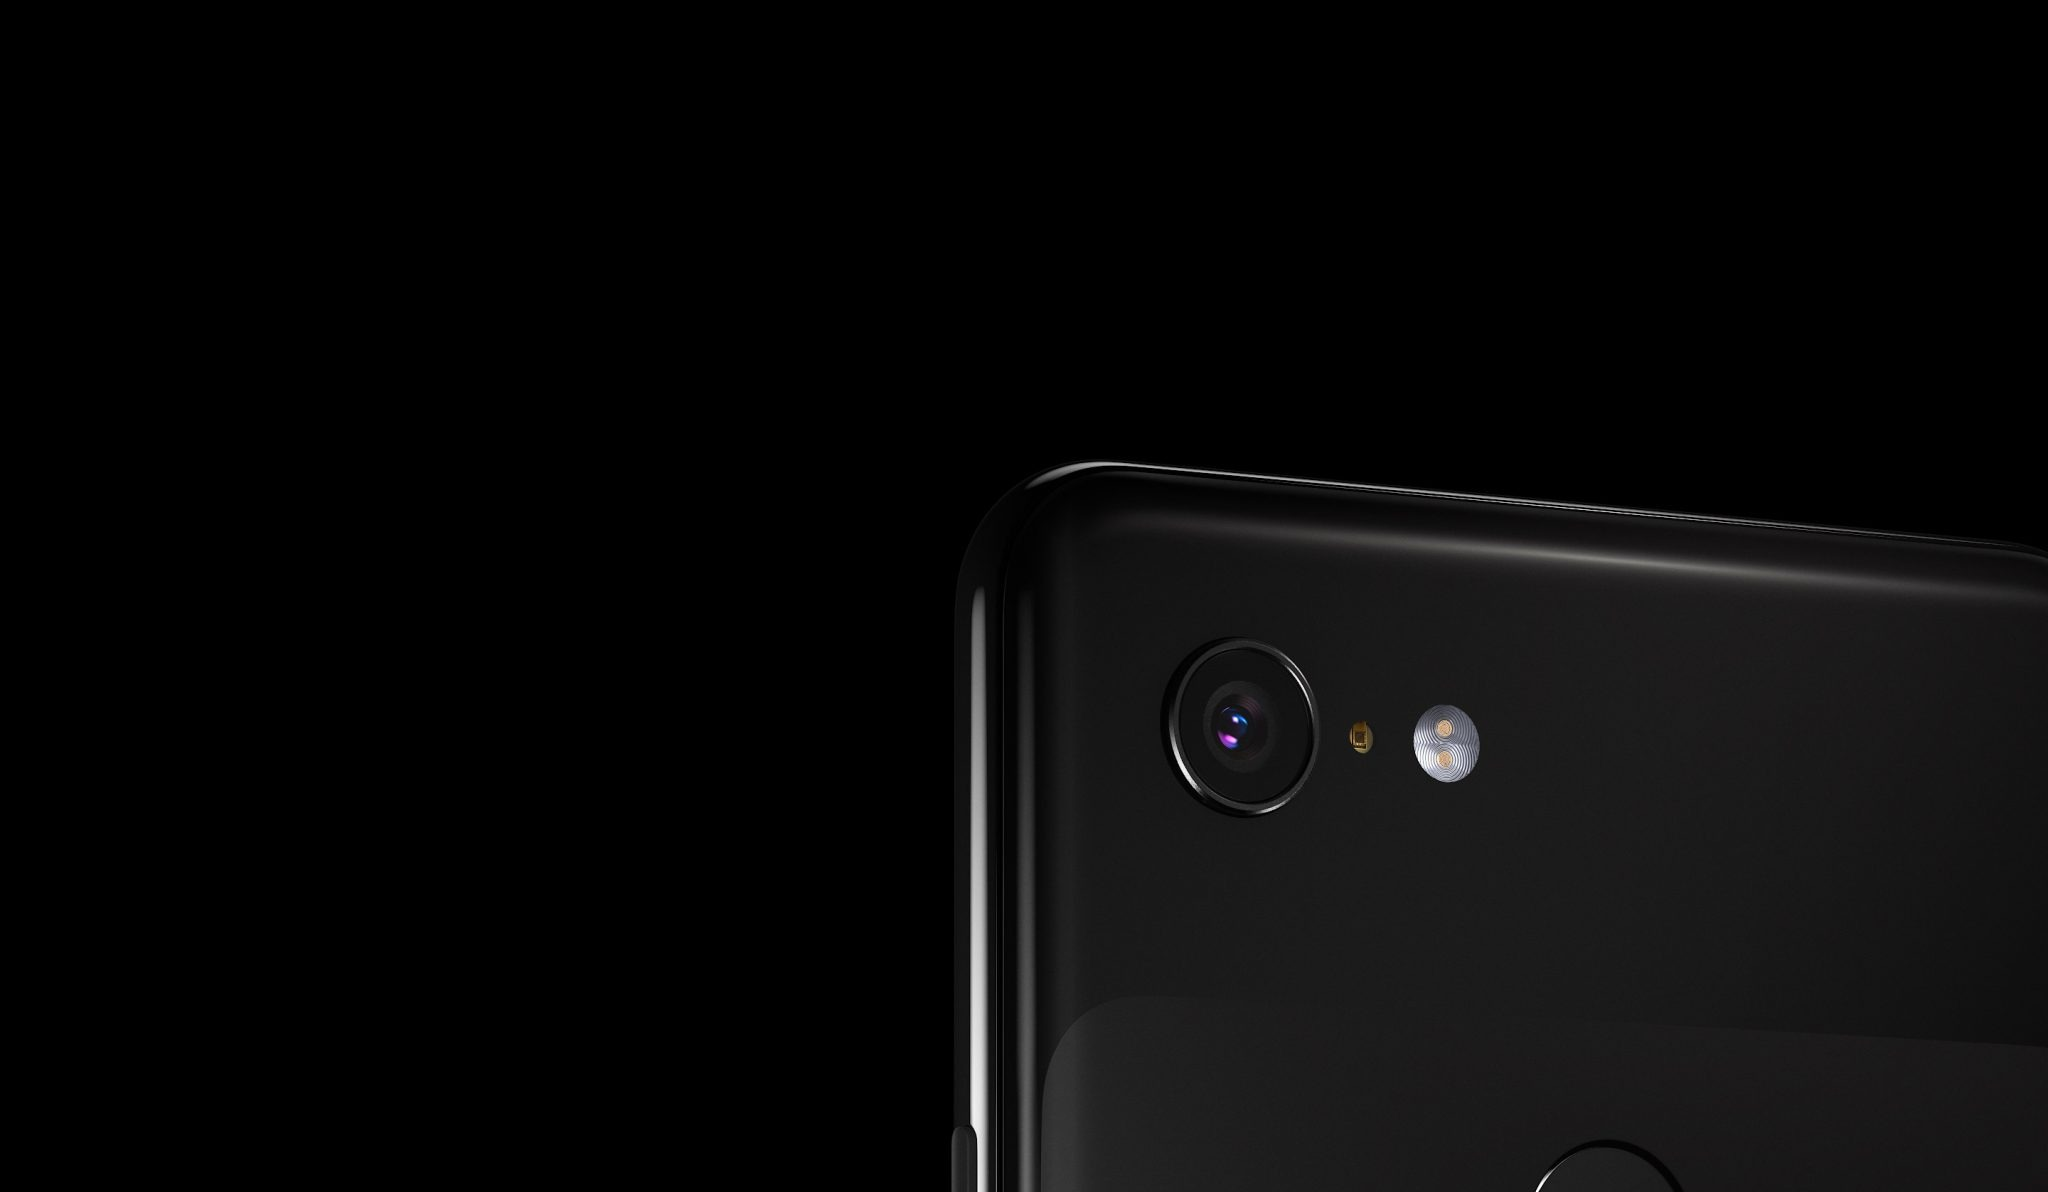 Google Pixel 3 & Pixel 3 XL announced - Here's all you need to know 7